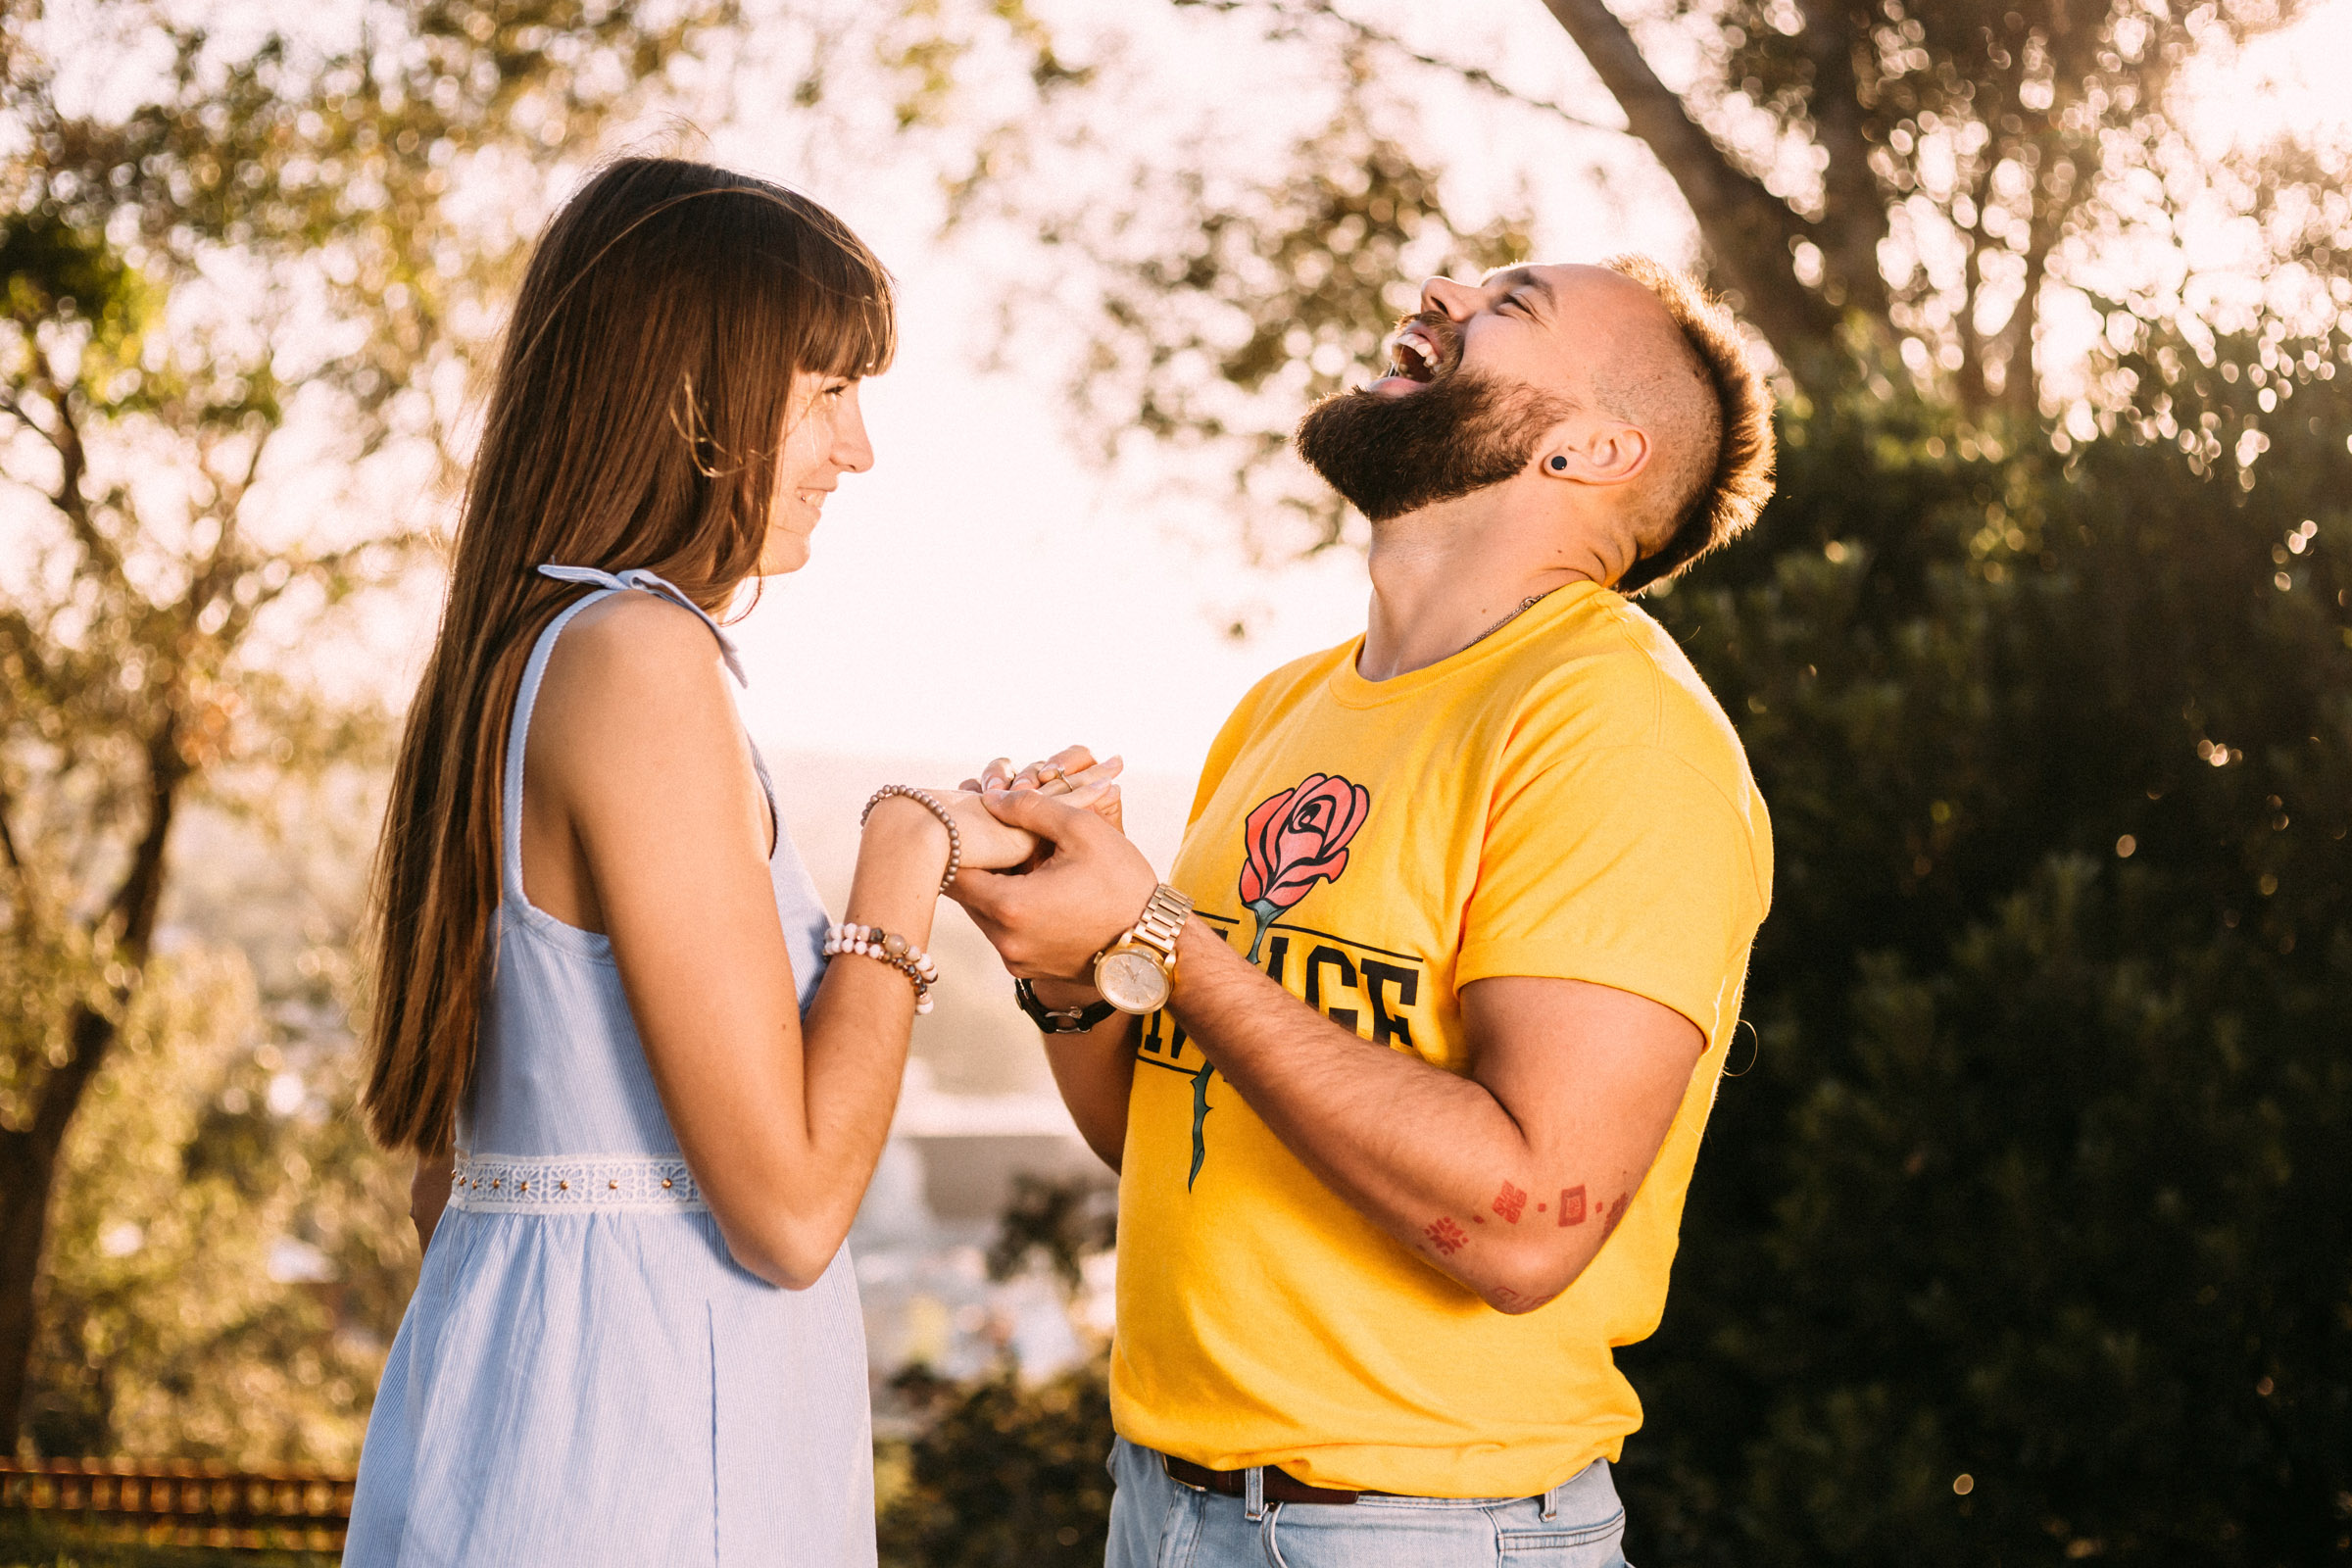 Romantic photo shoot as a guy makes a pr